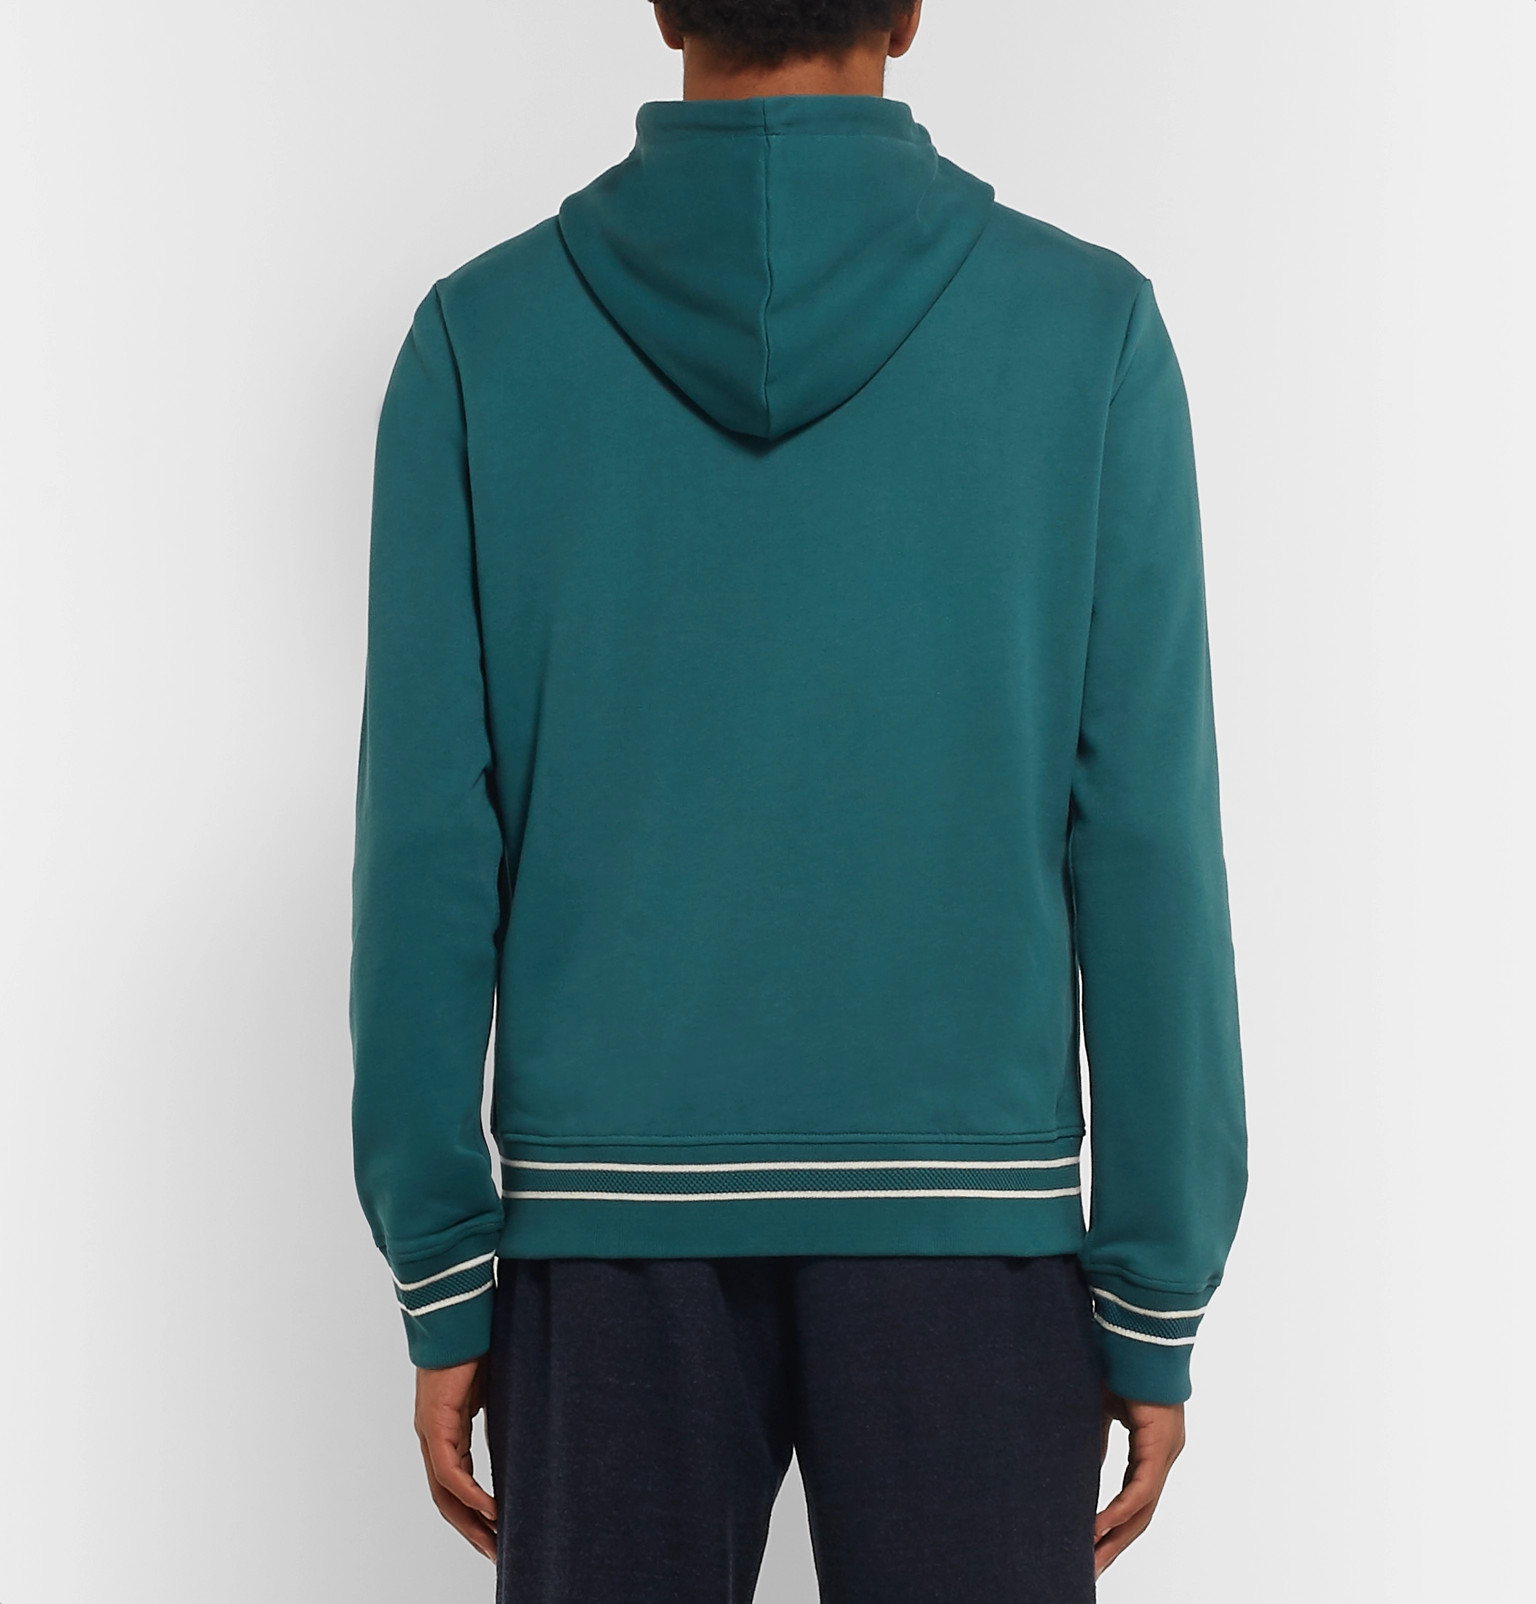 Mr Jersey P Cotton Tipped Loopback contrast Hoodie ArvnxwA